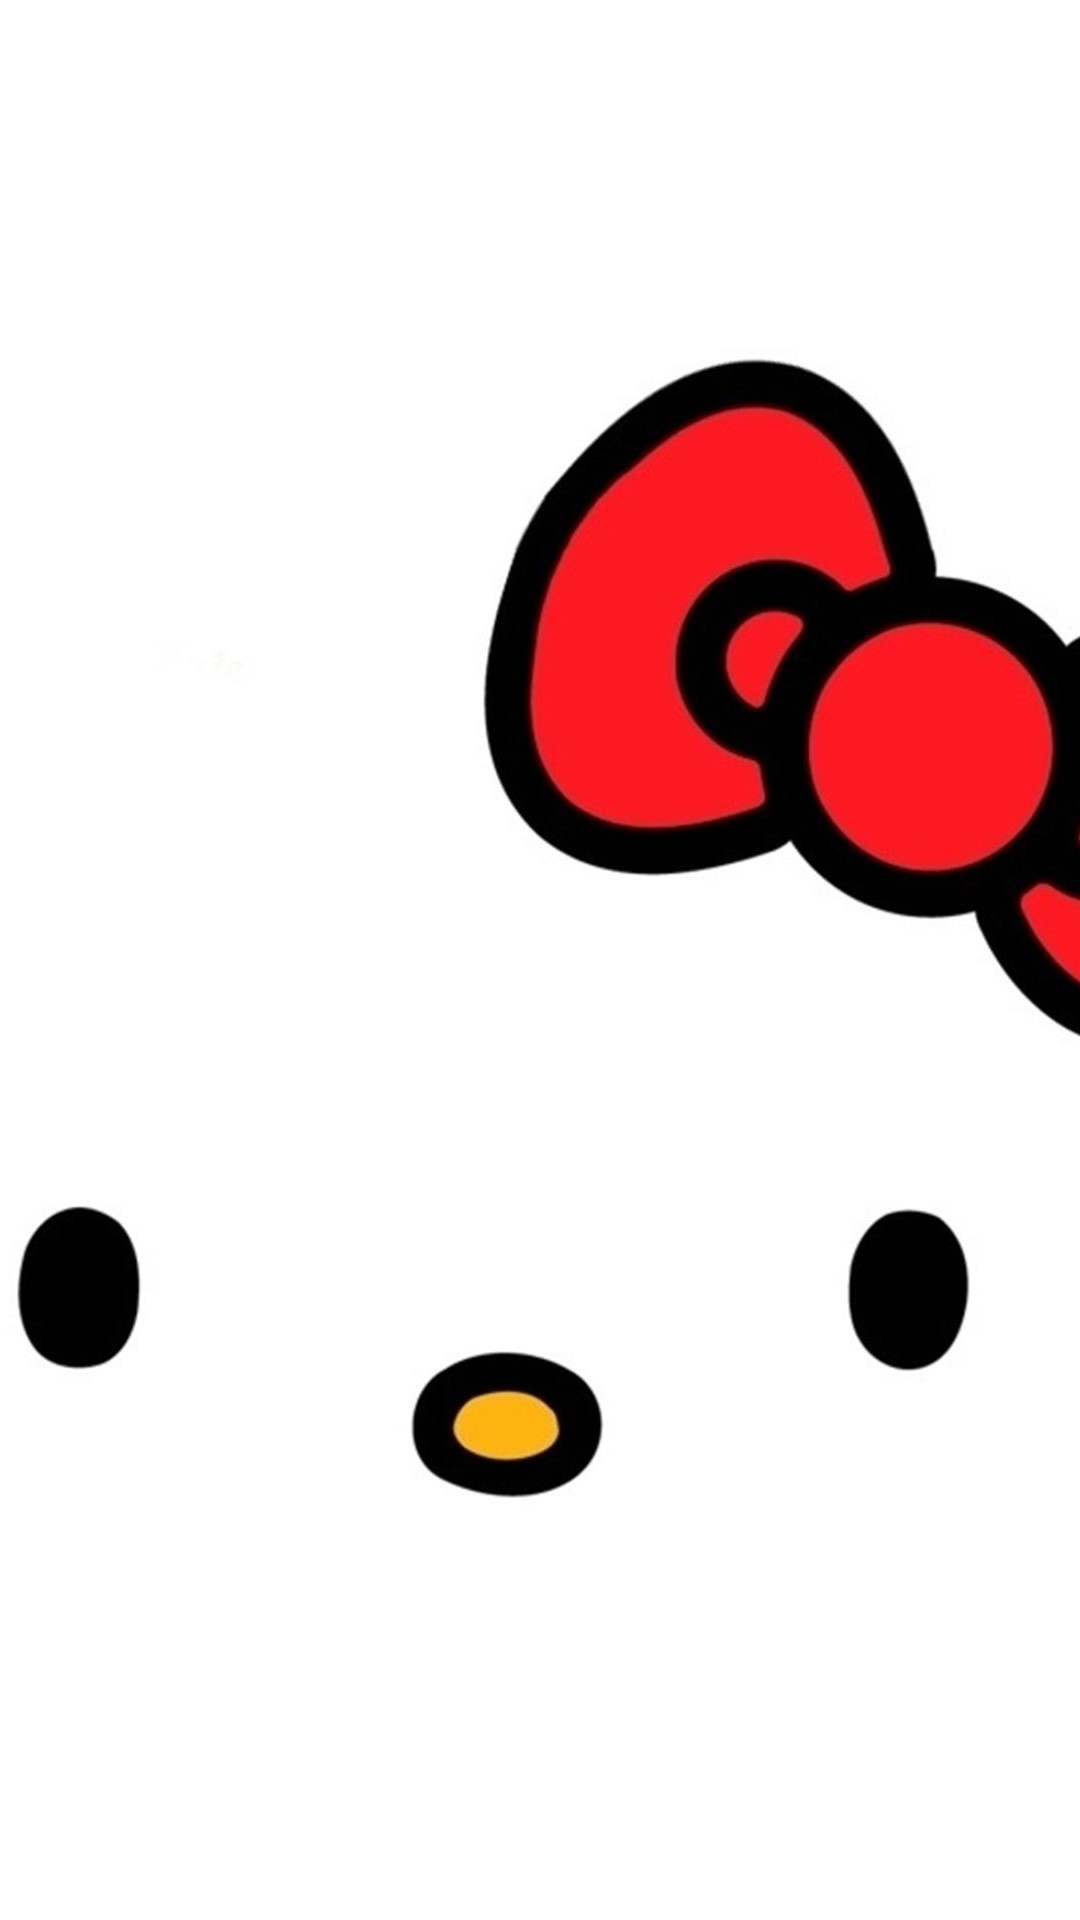 Hd Wallpaper Hello Kitty 69 Images